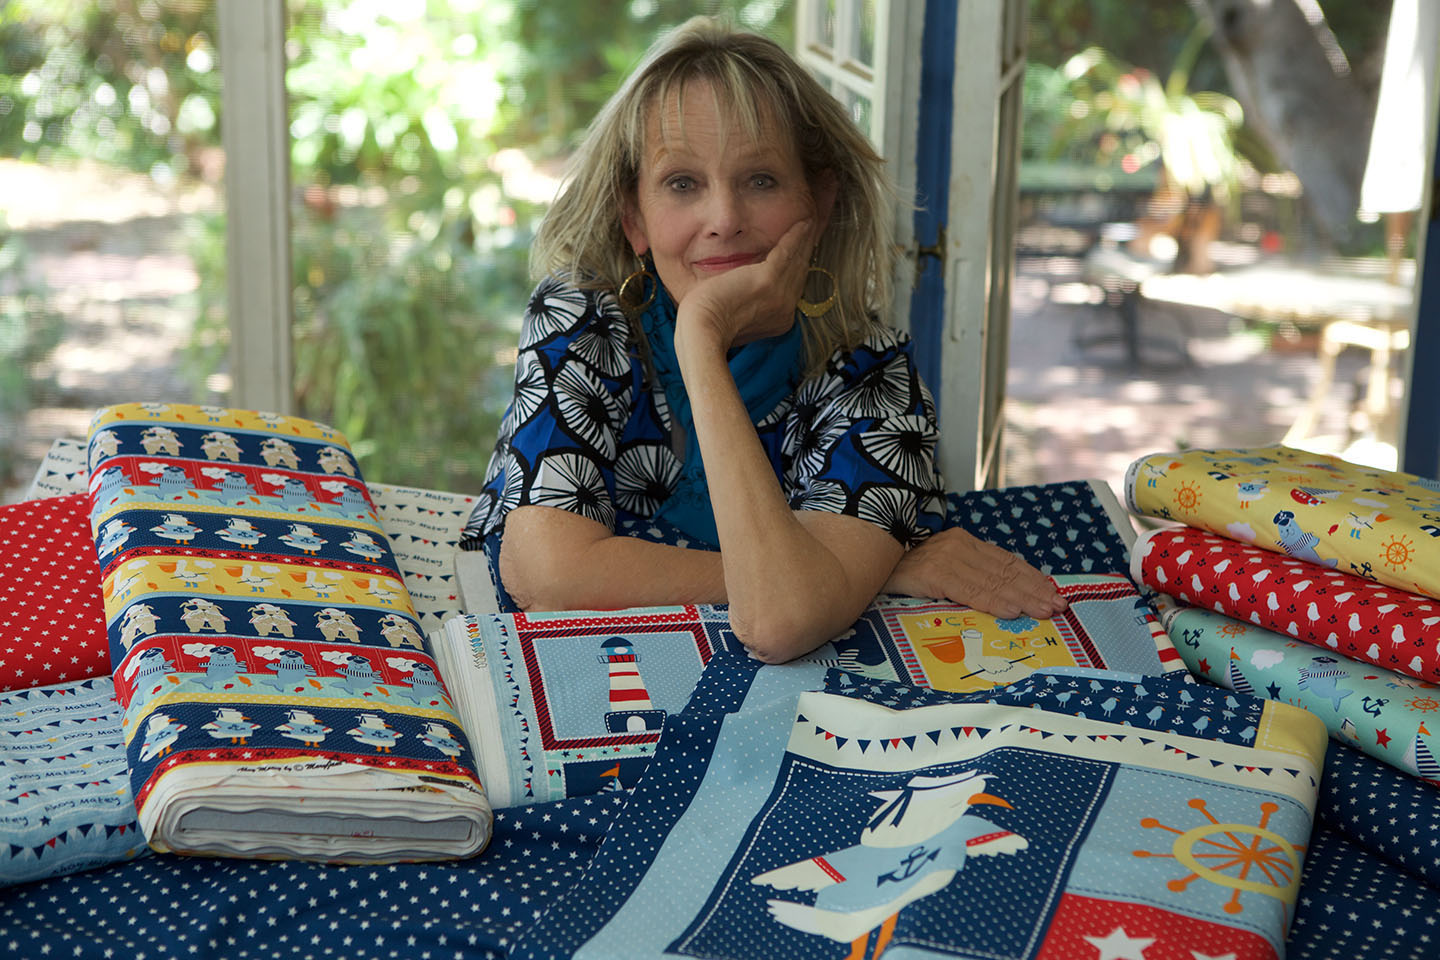 Textile Design Lab welcomes Mary Jane Mitchell